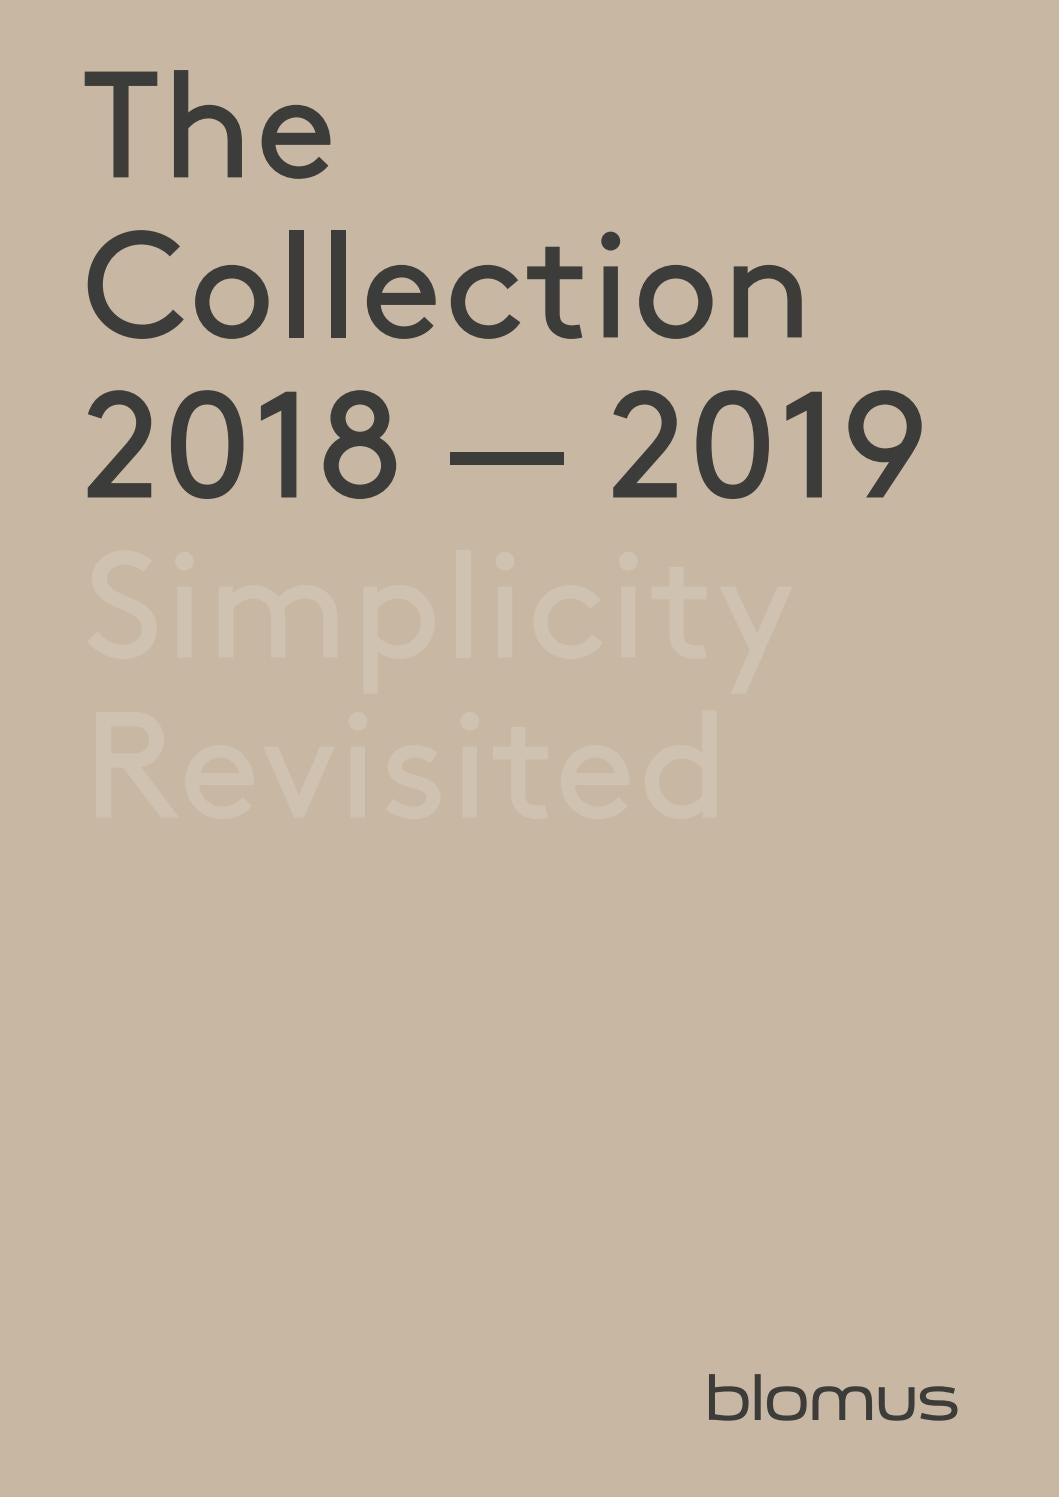 Blomus Catalogue 2018 2019 By New Vision Boutique Issuu